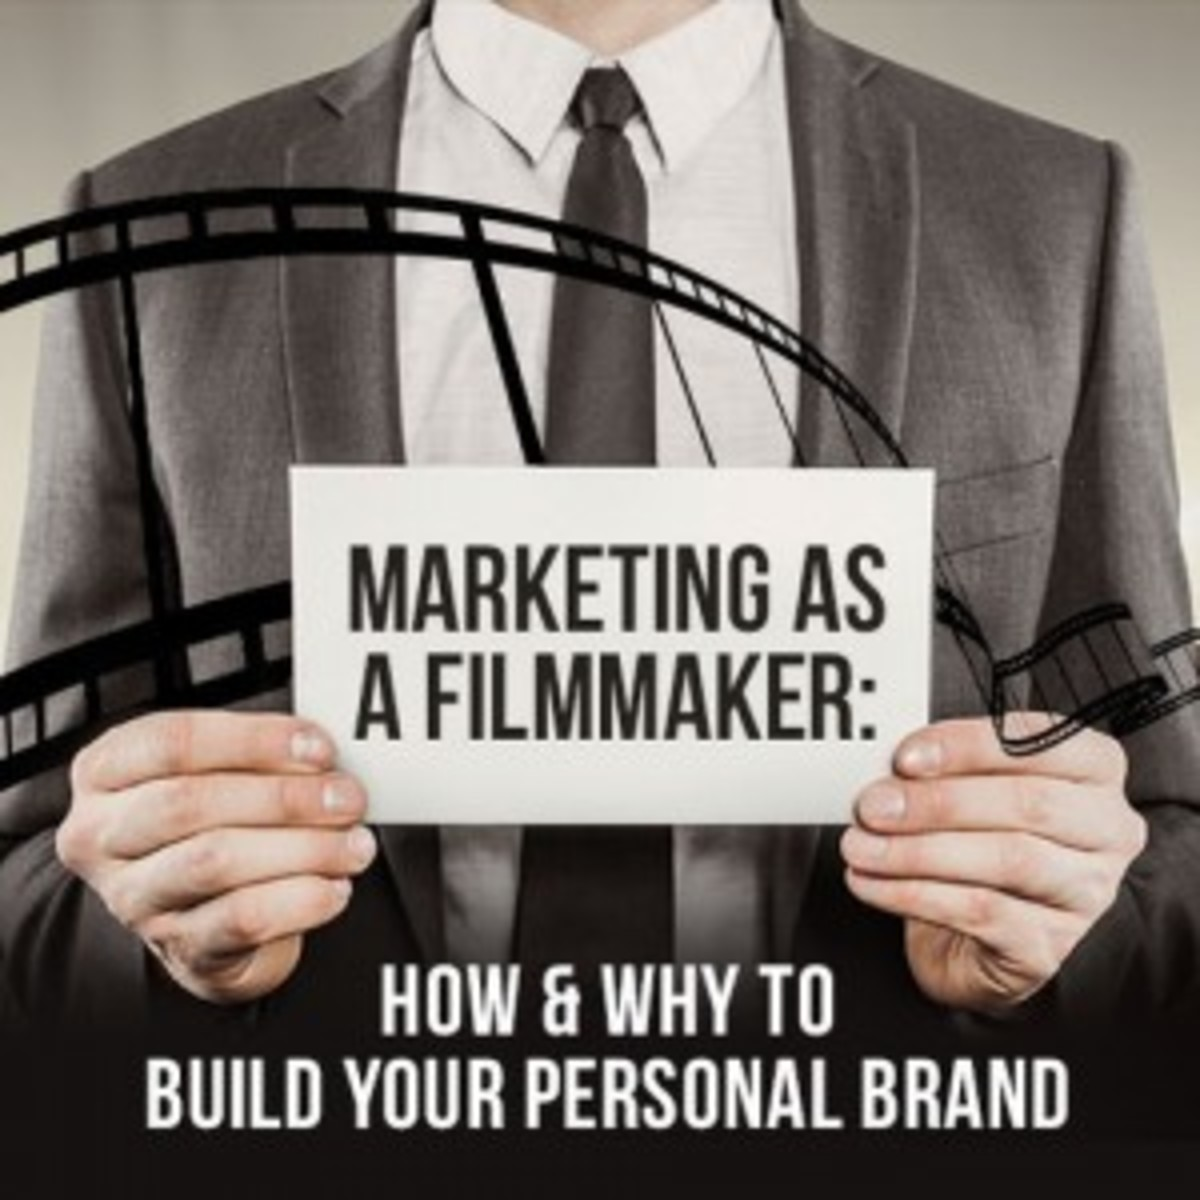 ws-marketingfilmaker-500_medium